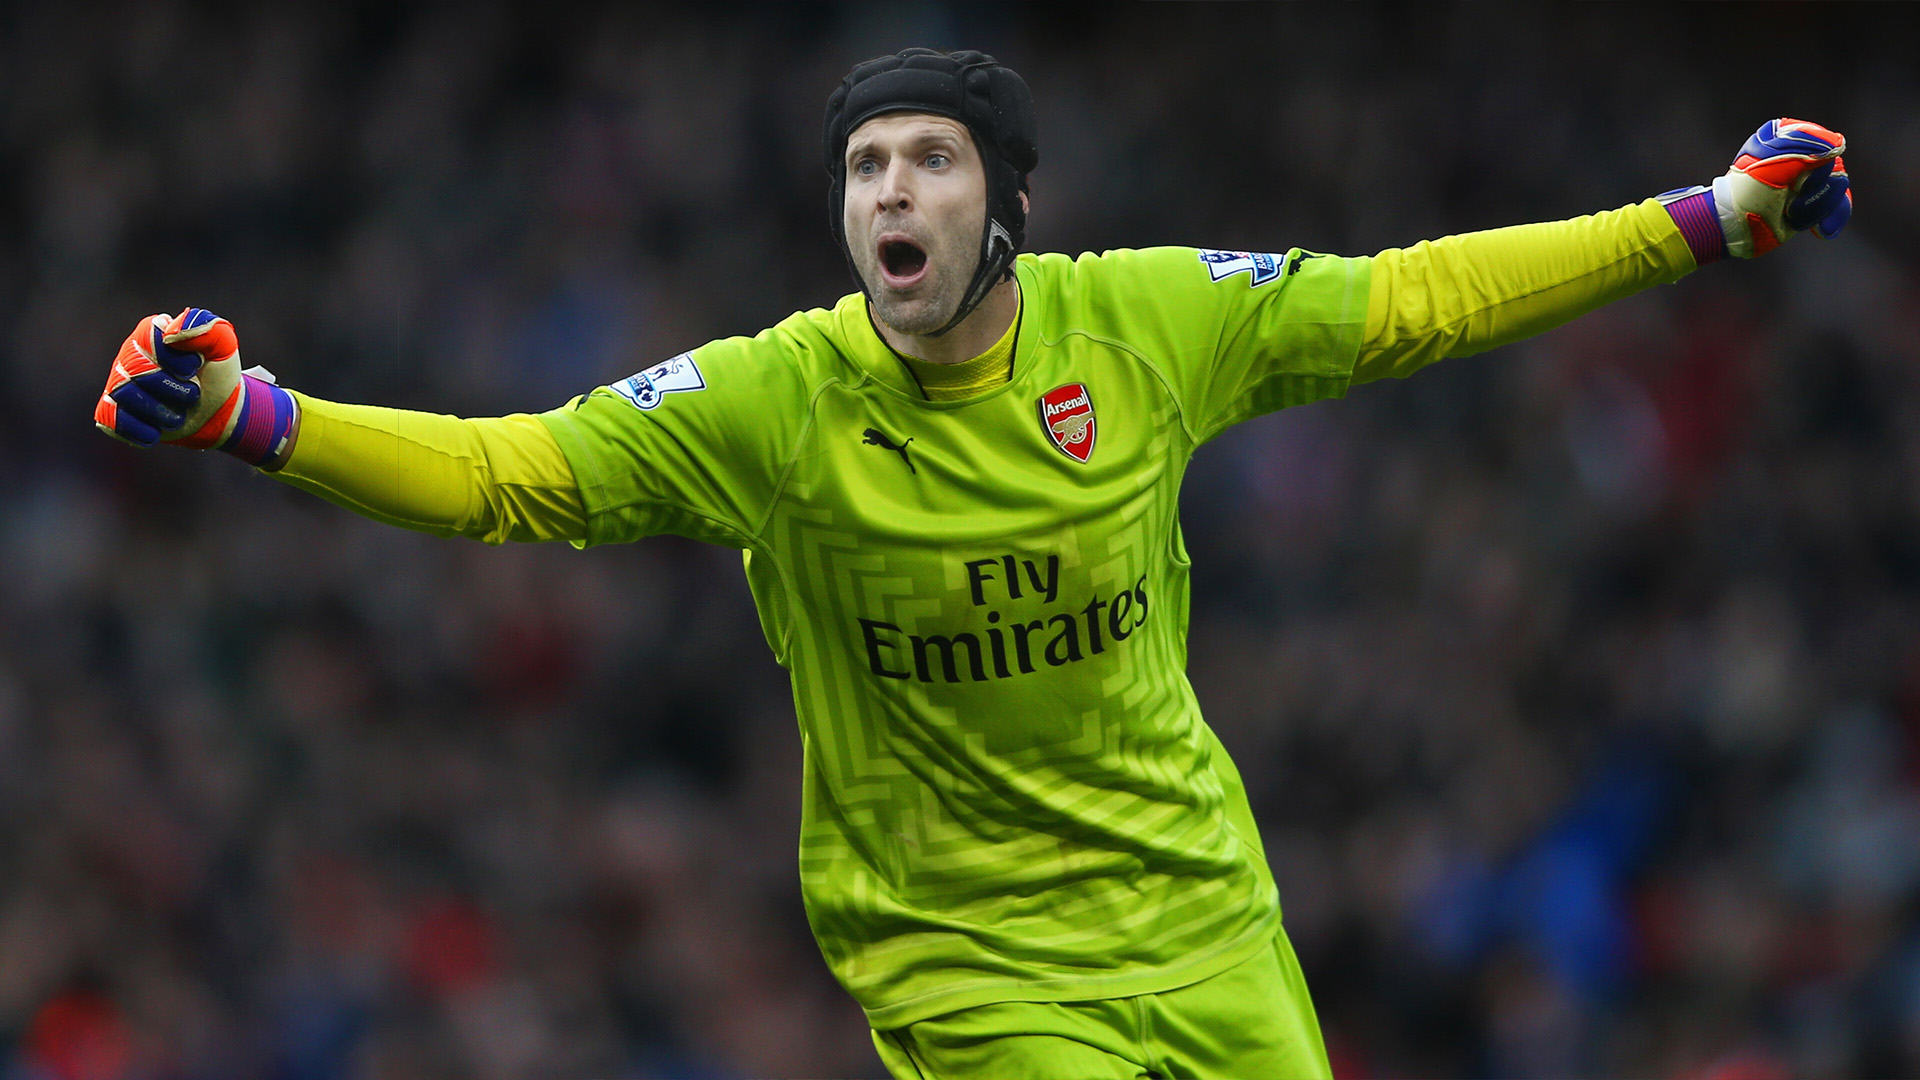 UNILAD afcc2 Internet Reacts To A Horror Display From Petr Cech...